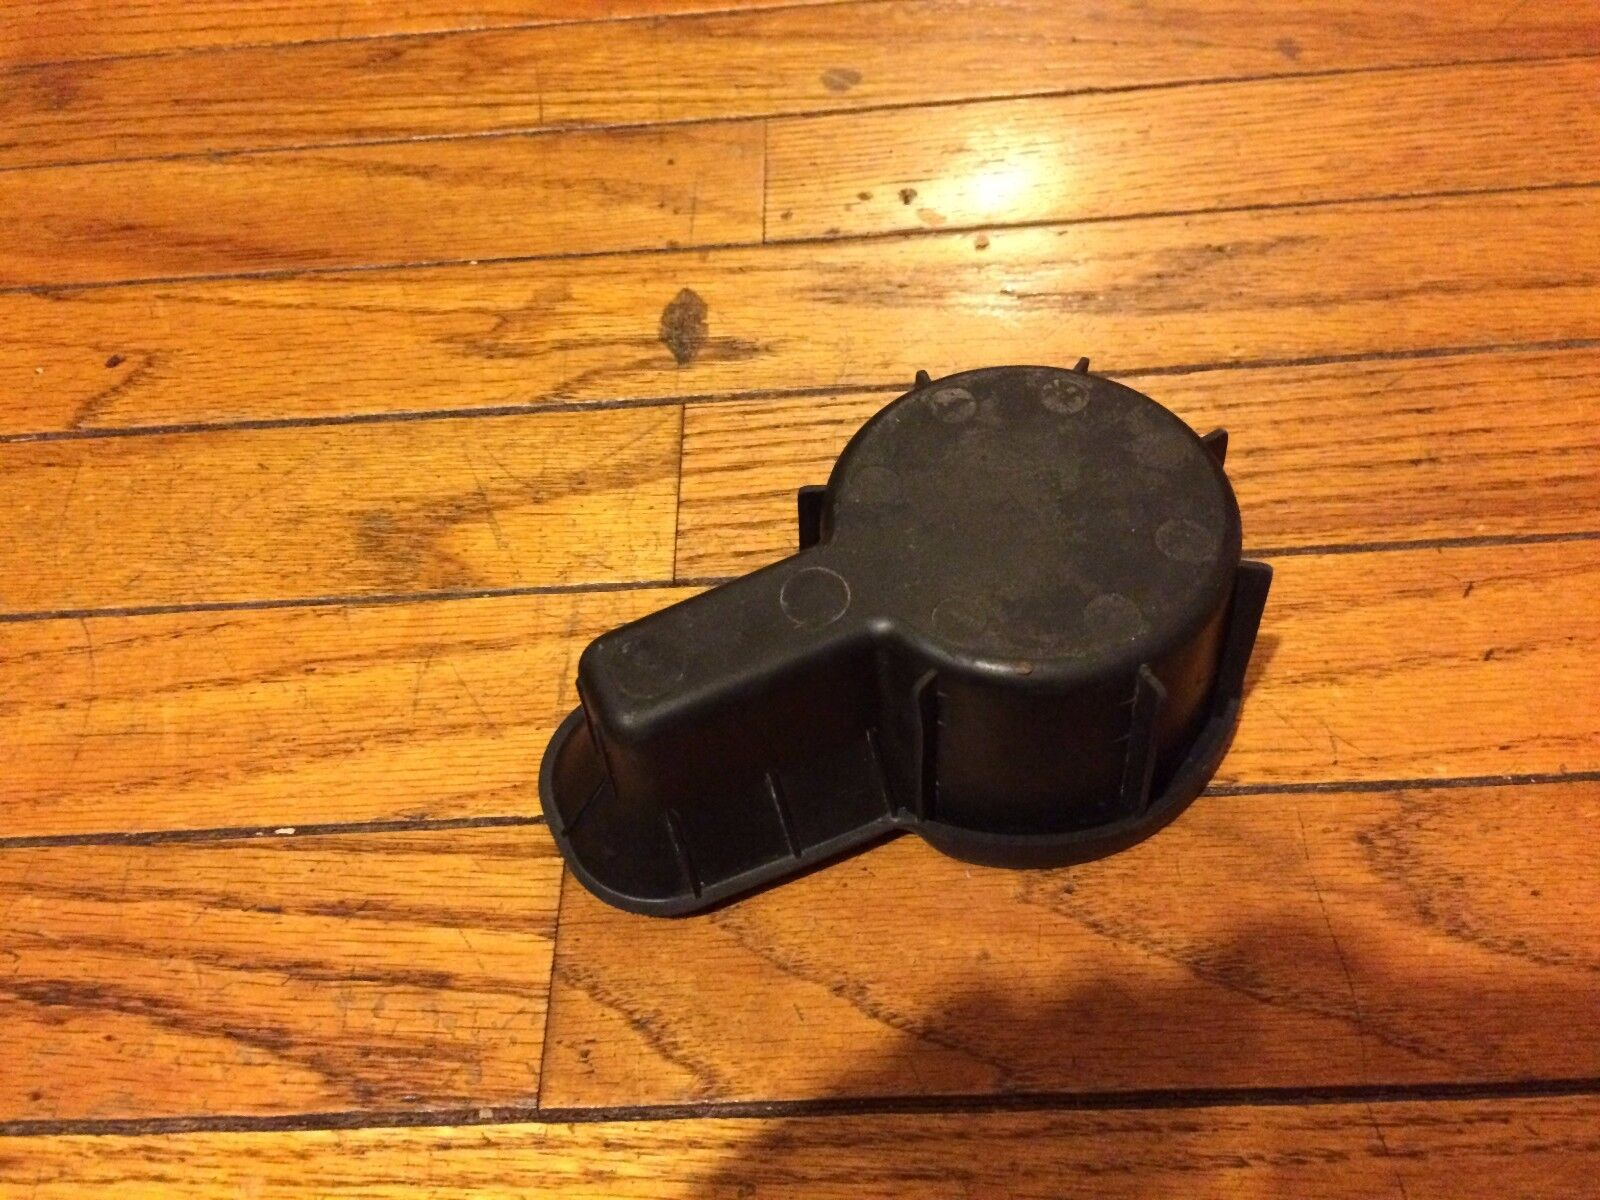 Used 2001 Nissan Xterra Dash Parts For Sale 01 Fuse Box 1998 X Terra Cup Holder Liner Coin Frontier 4x4 1999